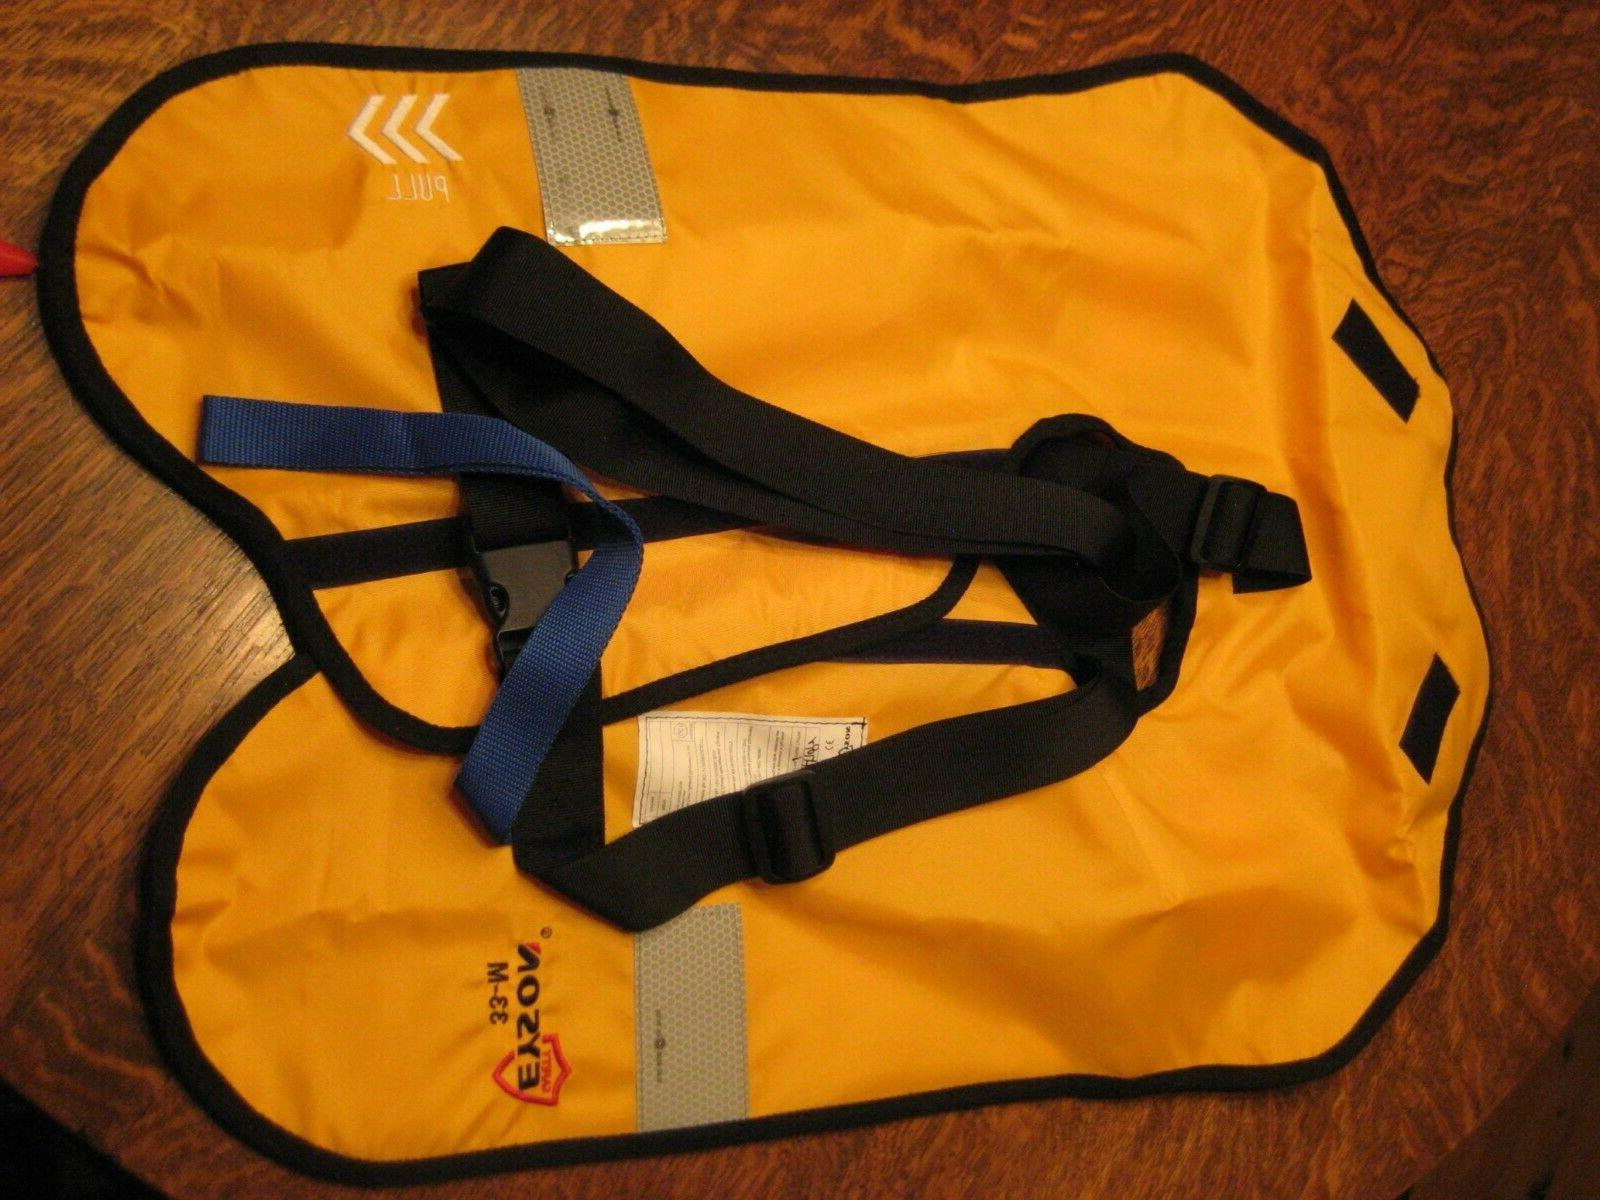 New Manual Inflatable Life PFD